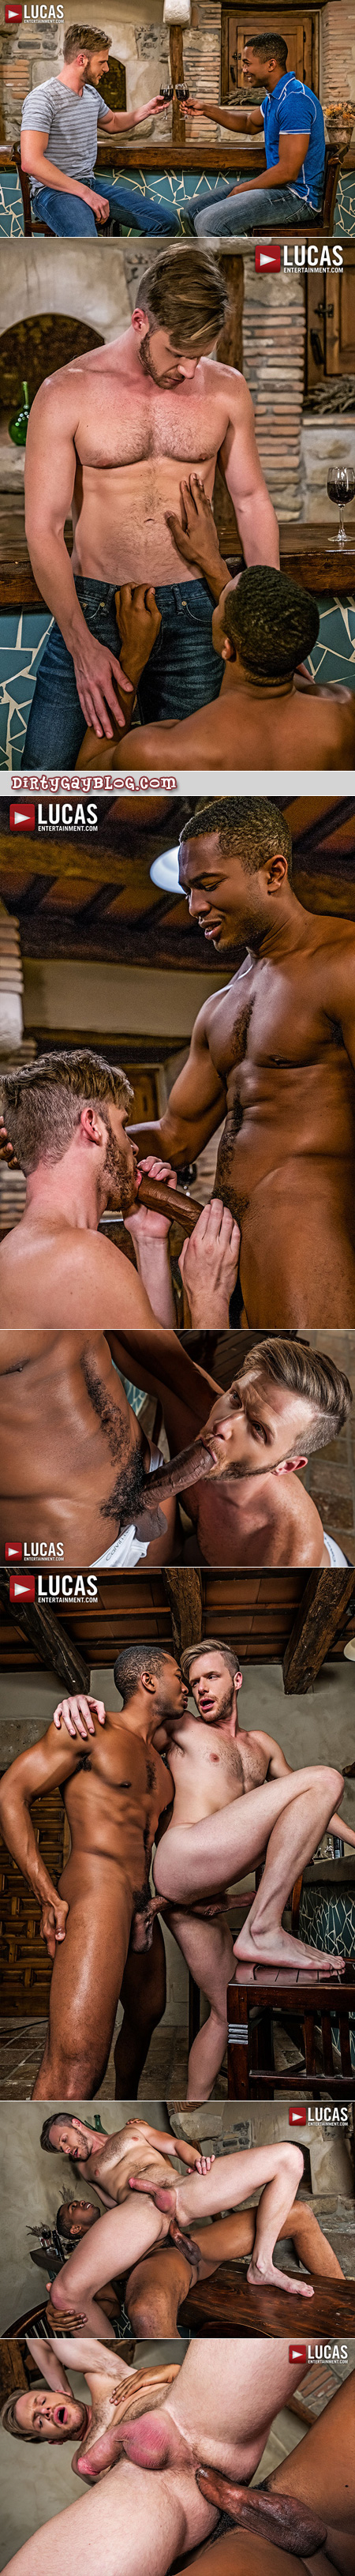 Hairy blonde hunk taking a huge black dick in his ass.